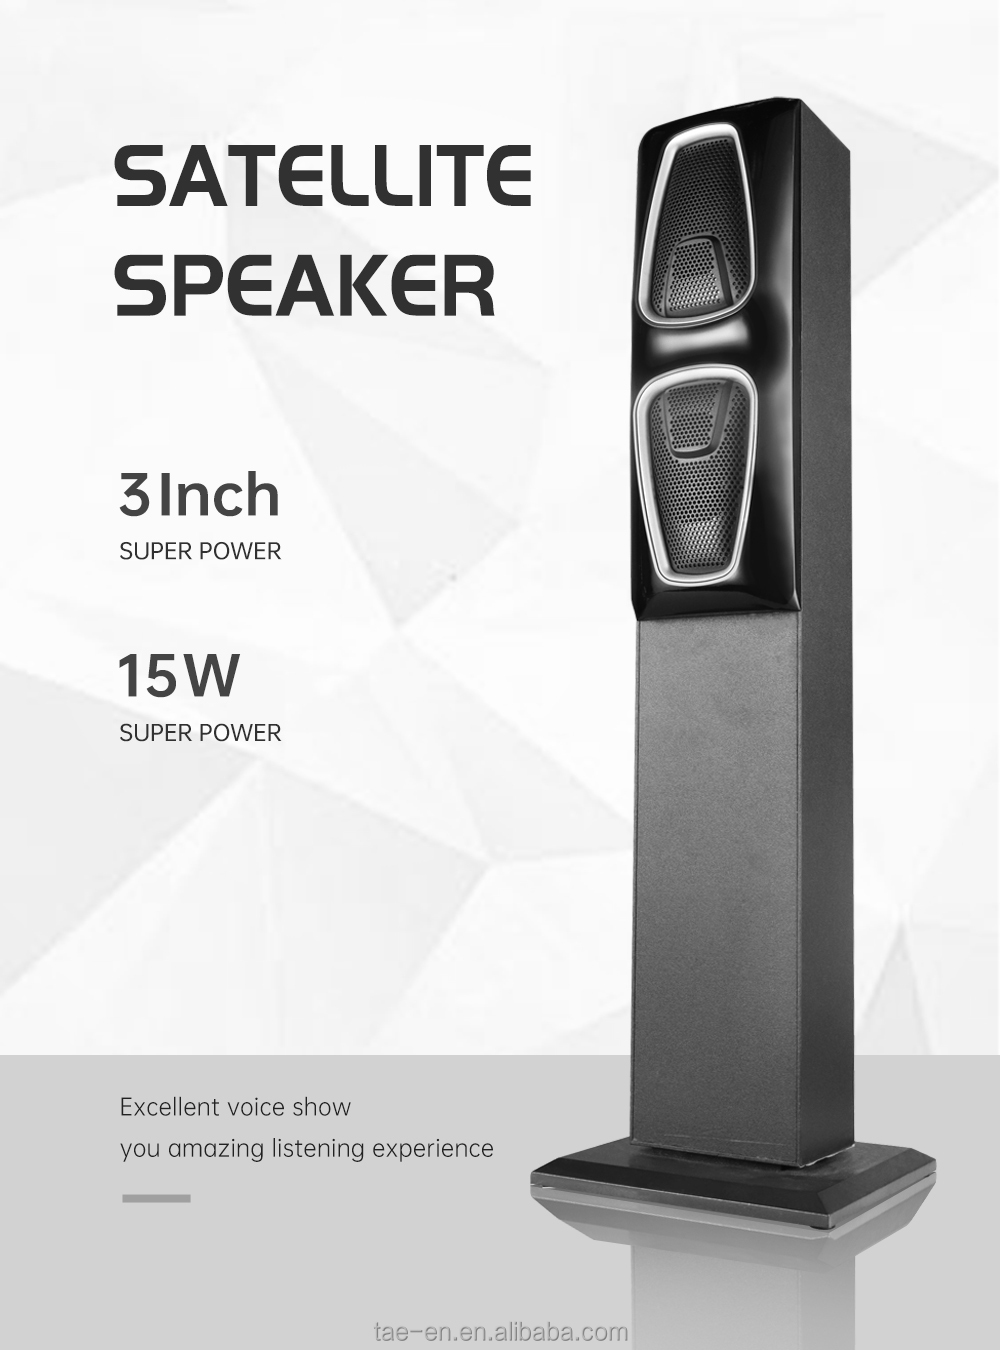 TK-891 2.1 3.1 5.1 Home Theater System 2.1 3.1 5.1 speakers With BT/FM/USB/MP3/SD/remote control